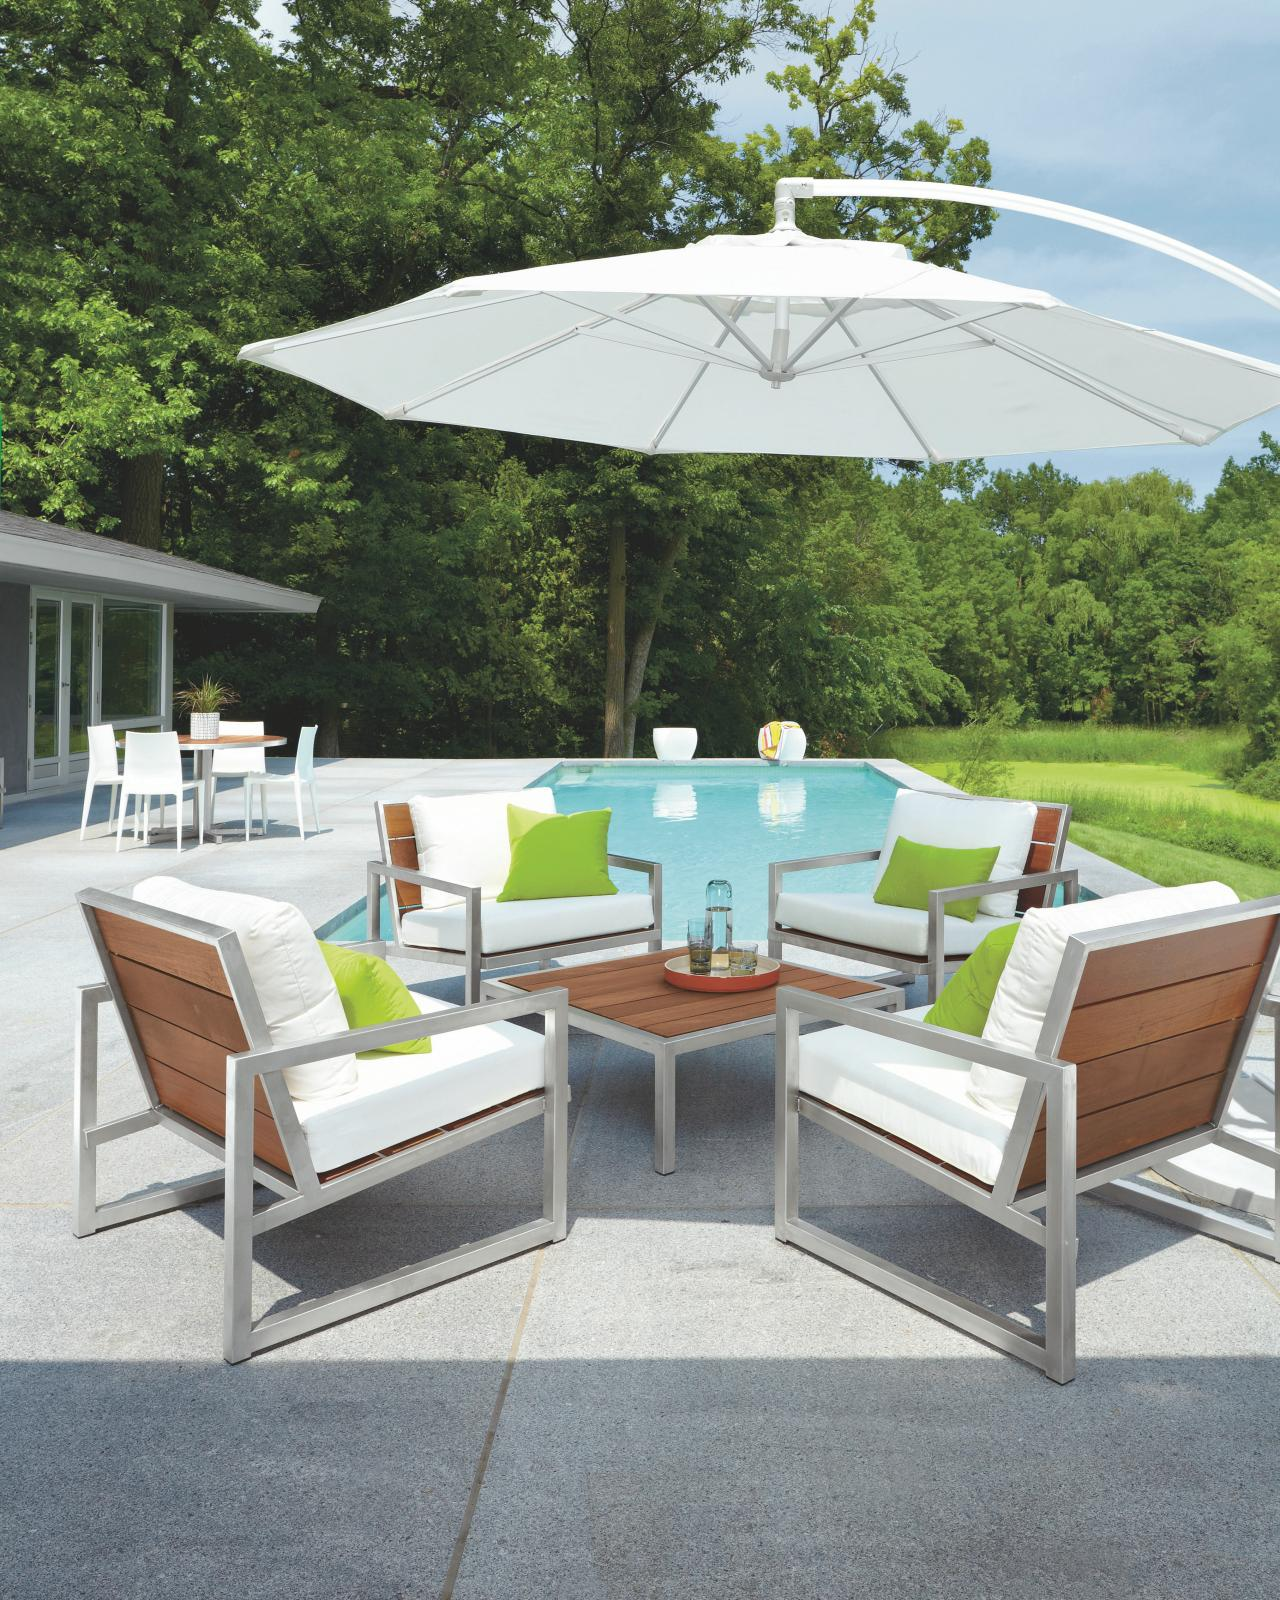 Easy tips for thomasville outdoor furniture purchase for Pool and patio furniture